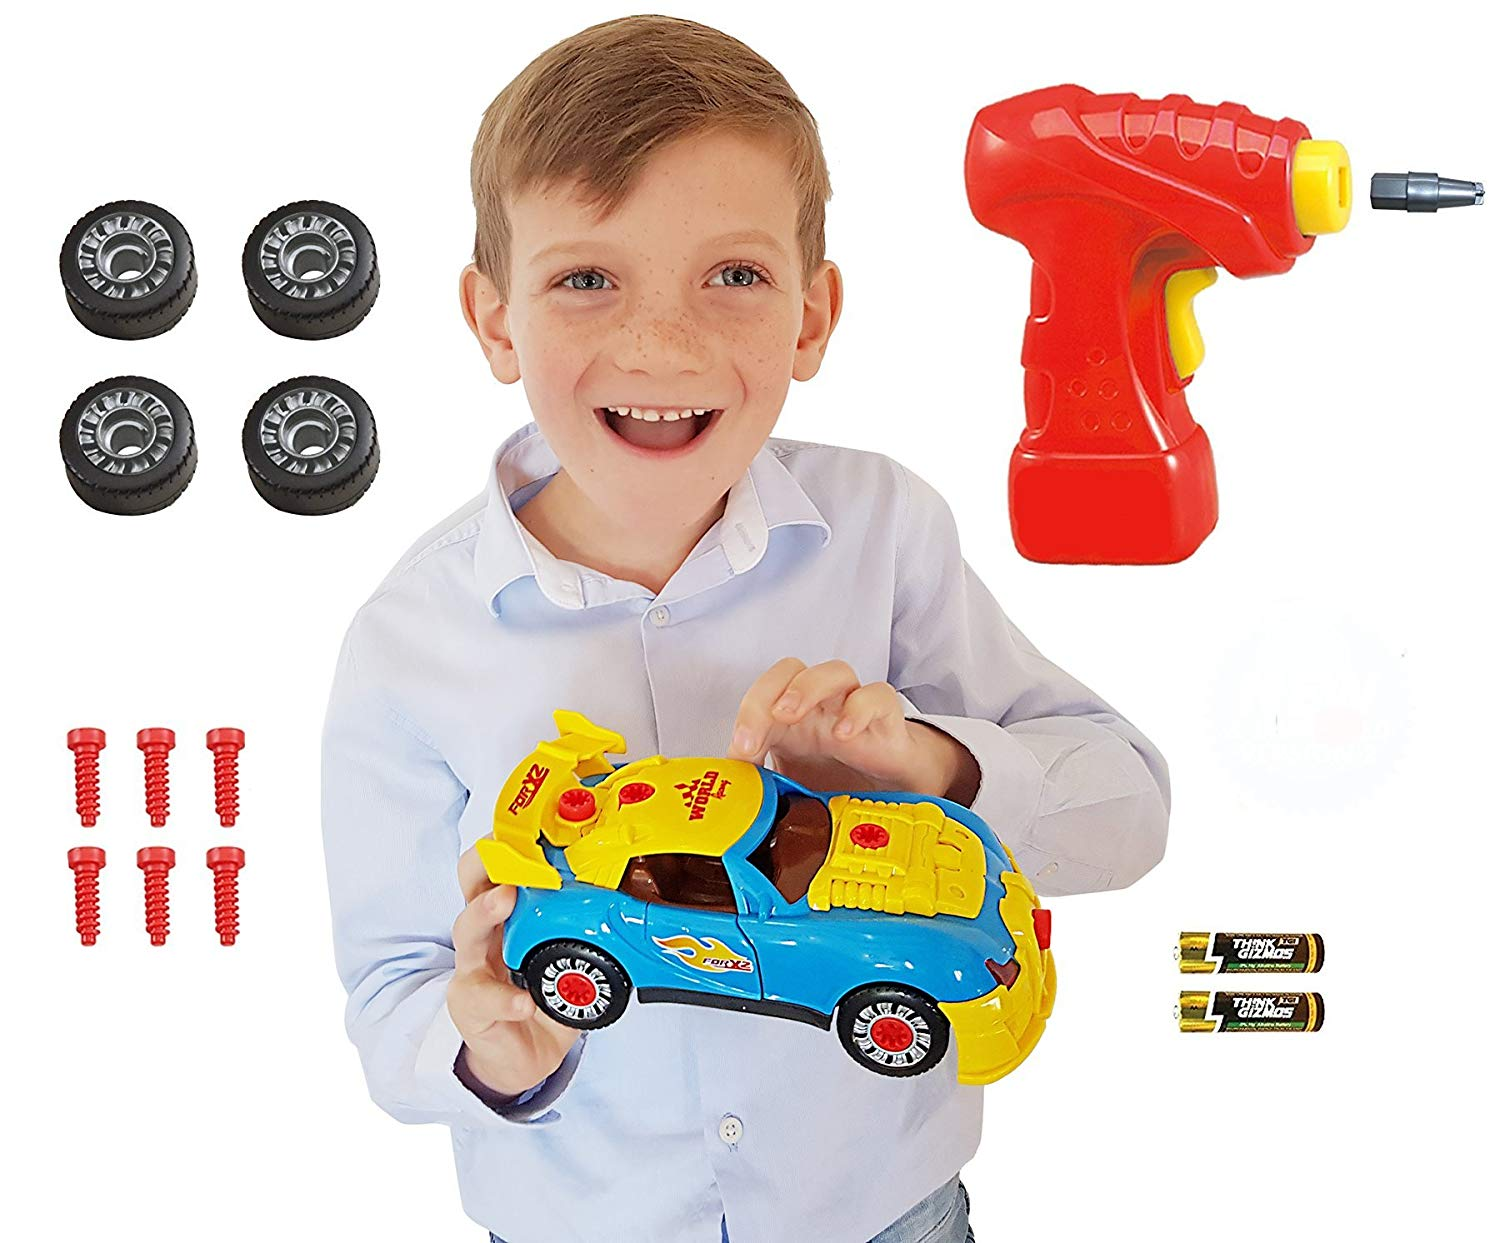 Review of Think Gizmos Take Apart Toy Racing Car - Construction Toy Kit for Boys and Girls Aged 3 4 5 6 7 8